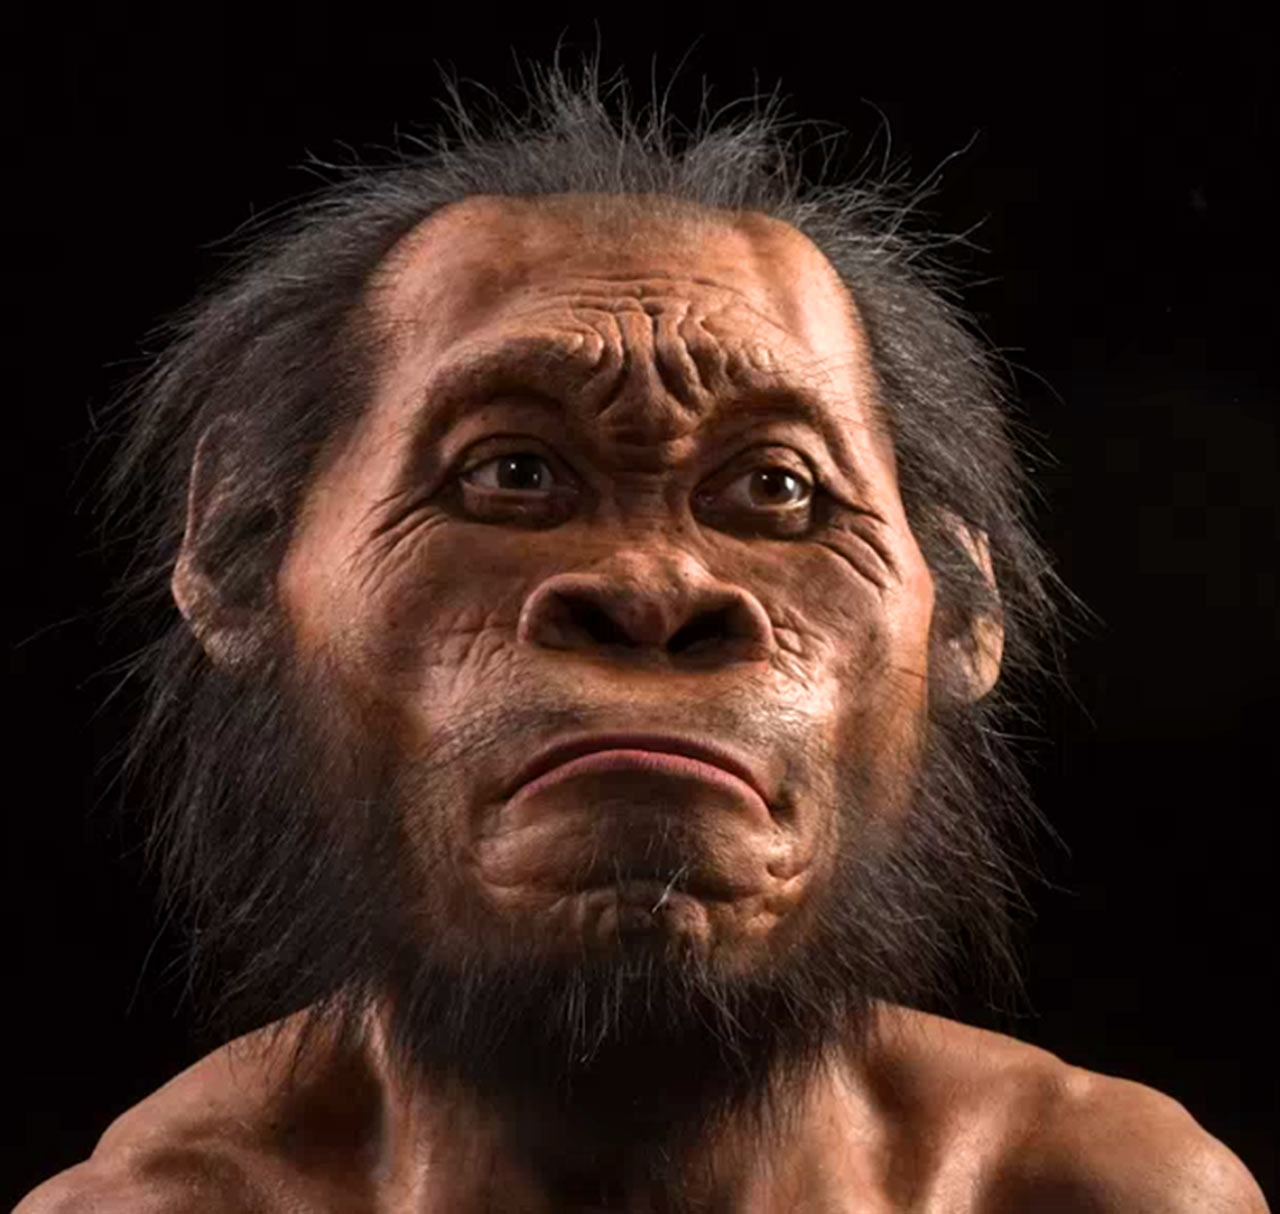 hight resolution of homo naledi new species of human ancestor discovered anthropology rh sci news com acne diagram pimples